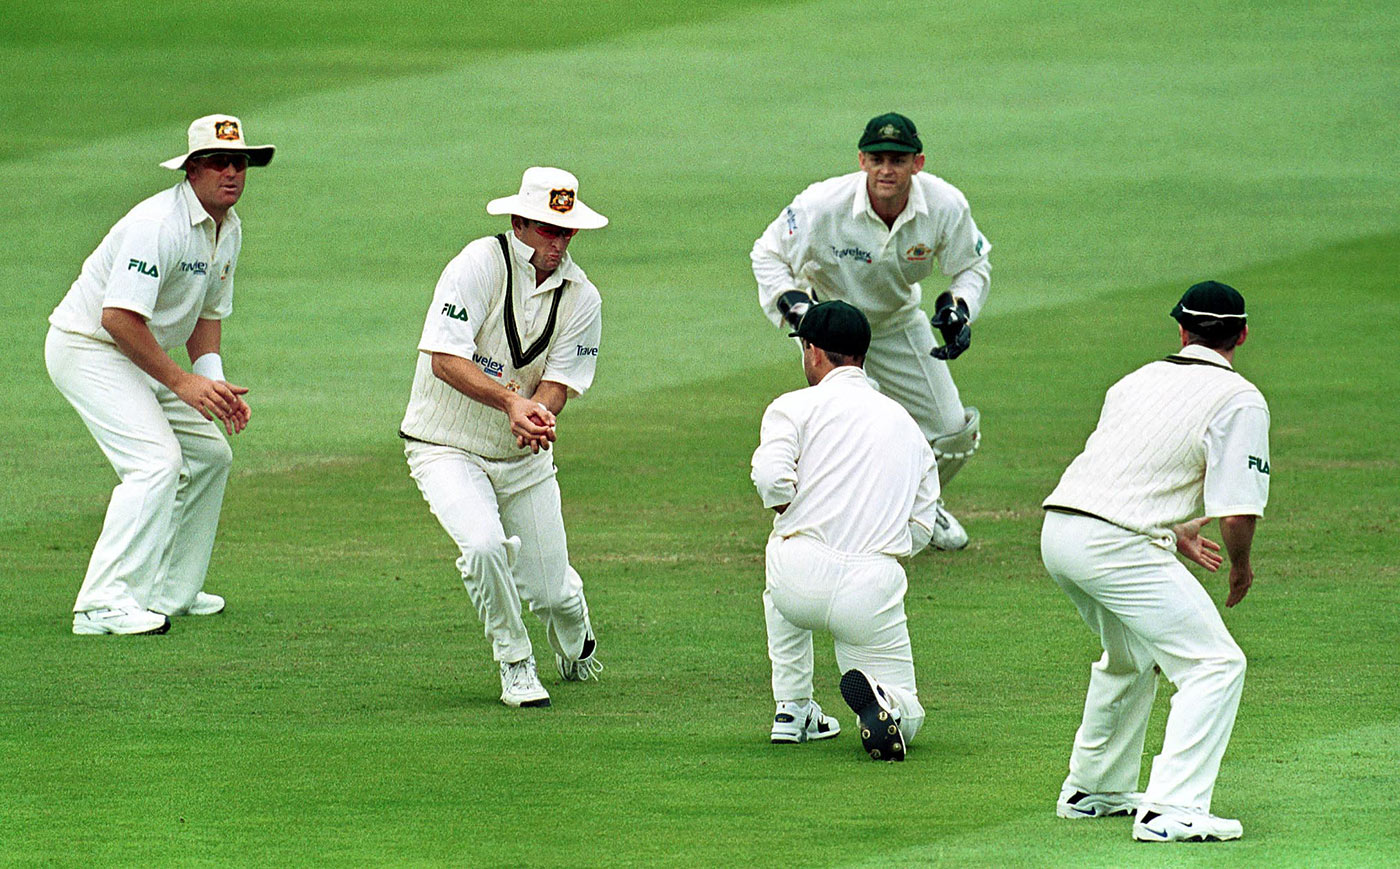 Master at work: Mark Waugh takes his 158th catch, at Lord's in 2001, setting a record for the time